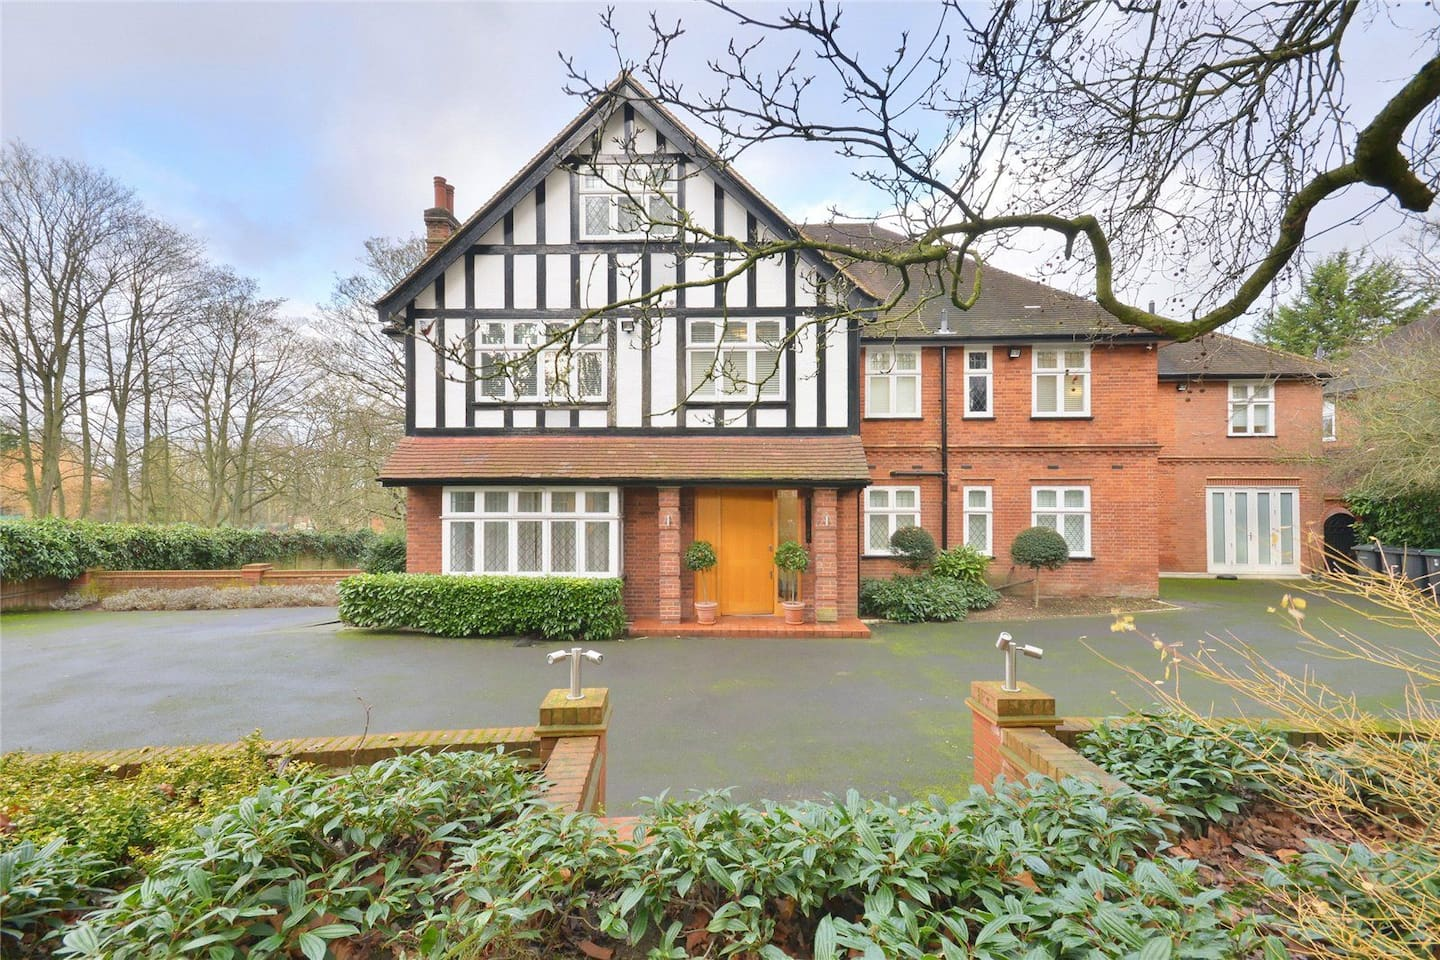 Lovely Family Home opposite Kenwood House, Hampstead Heath. Great for country living in London, lovely long walks on the heath with views over London. Located between the historic villages of both Highgate and Hampstead. Central London 20/30 minutes away by car.